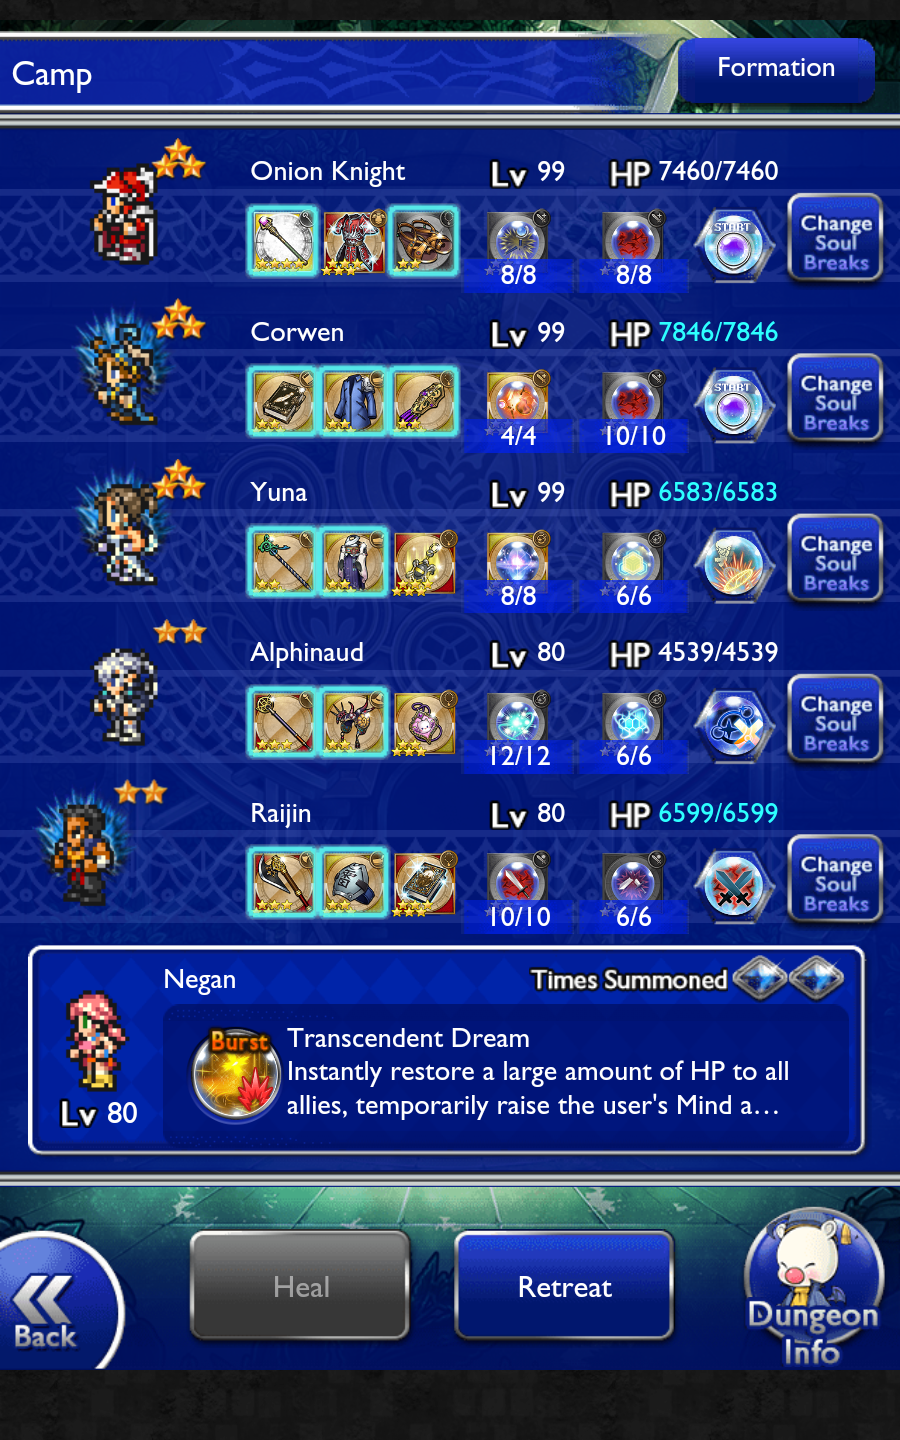 corwen games hits commands record magic vaan vanille dived level except least boost armor active still characters pending there also pics post easier 17k burst healed this make whip quistiss 4-6k highest just weapon synergy break multi lionheart shellga dance knights wrath haste yshtola charge entrust omega beyond anniversary event